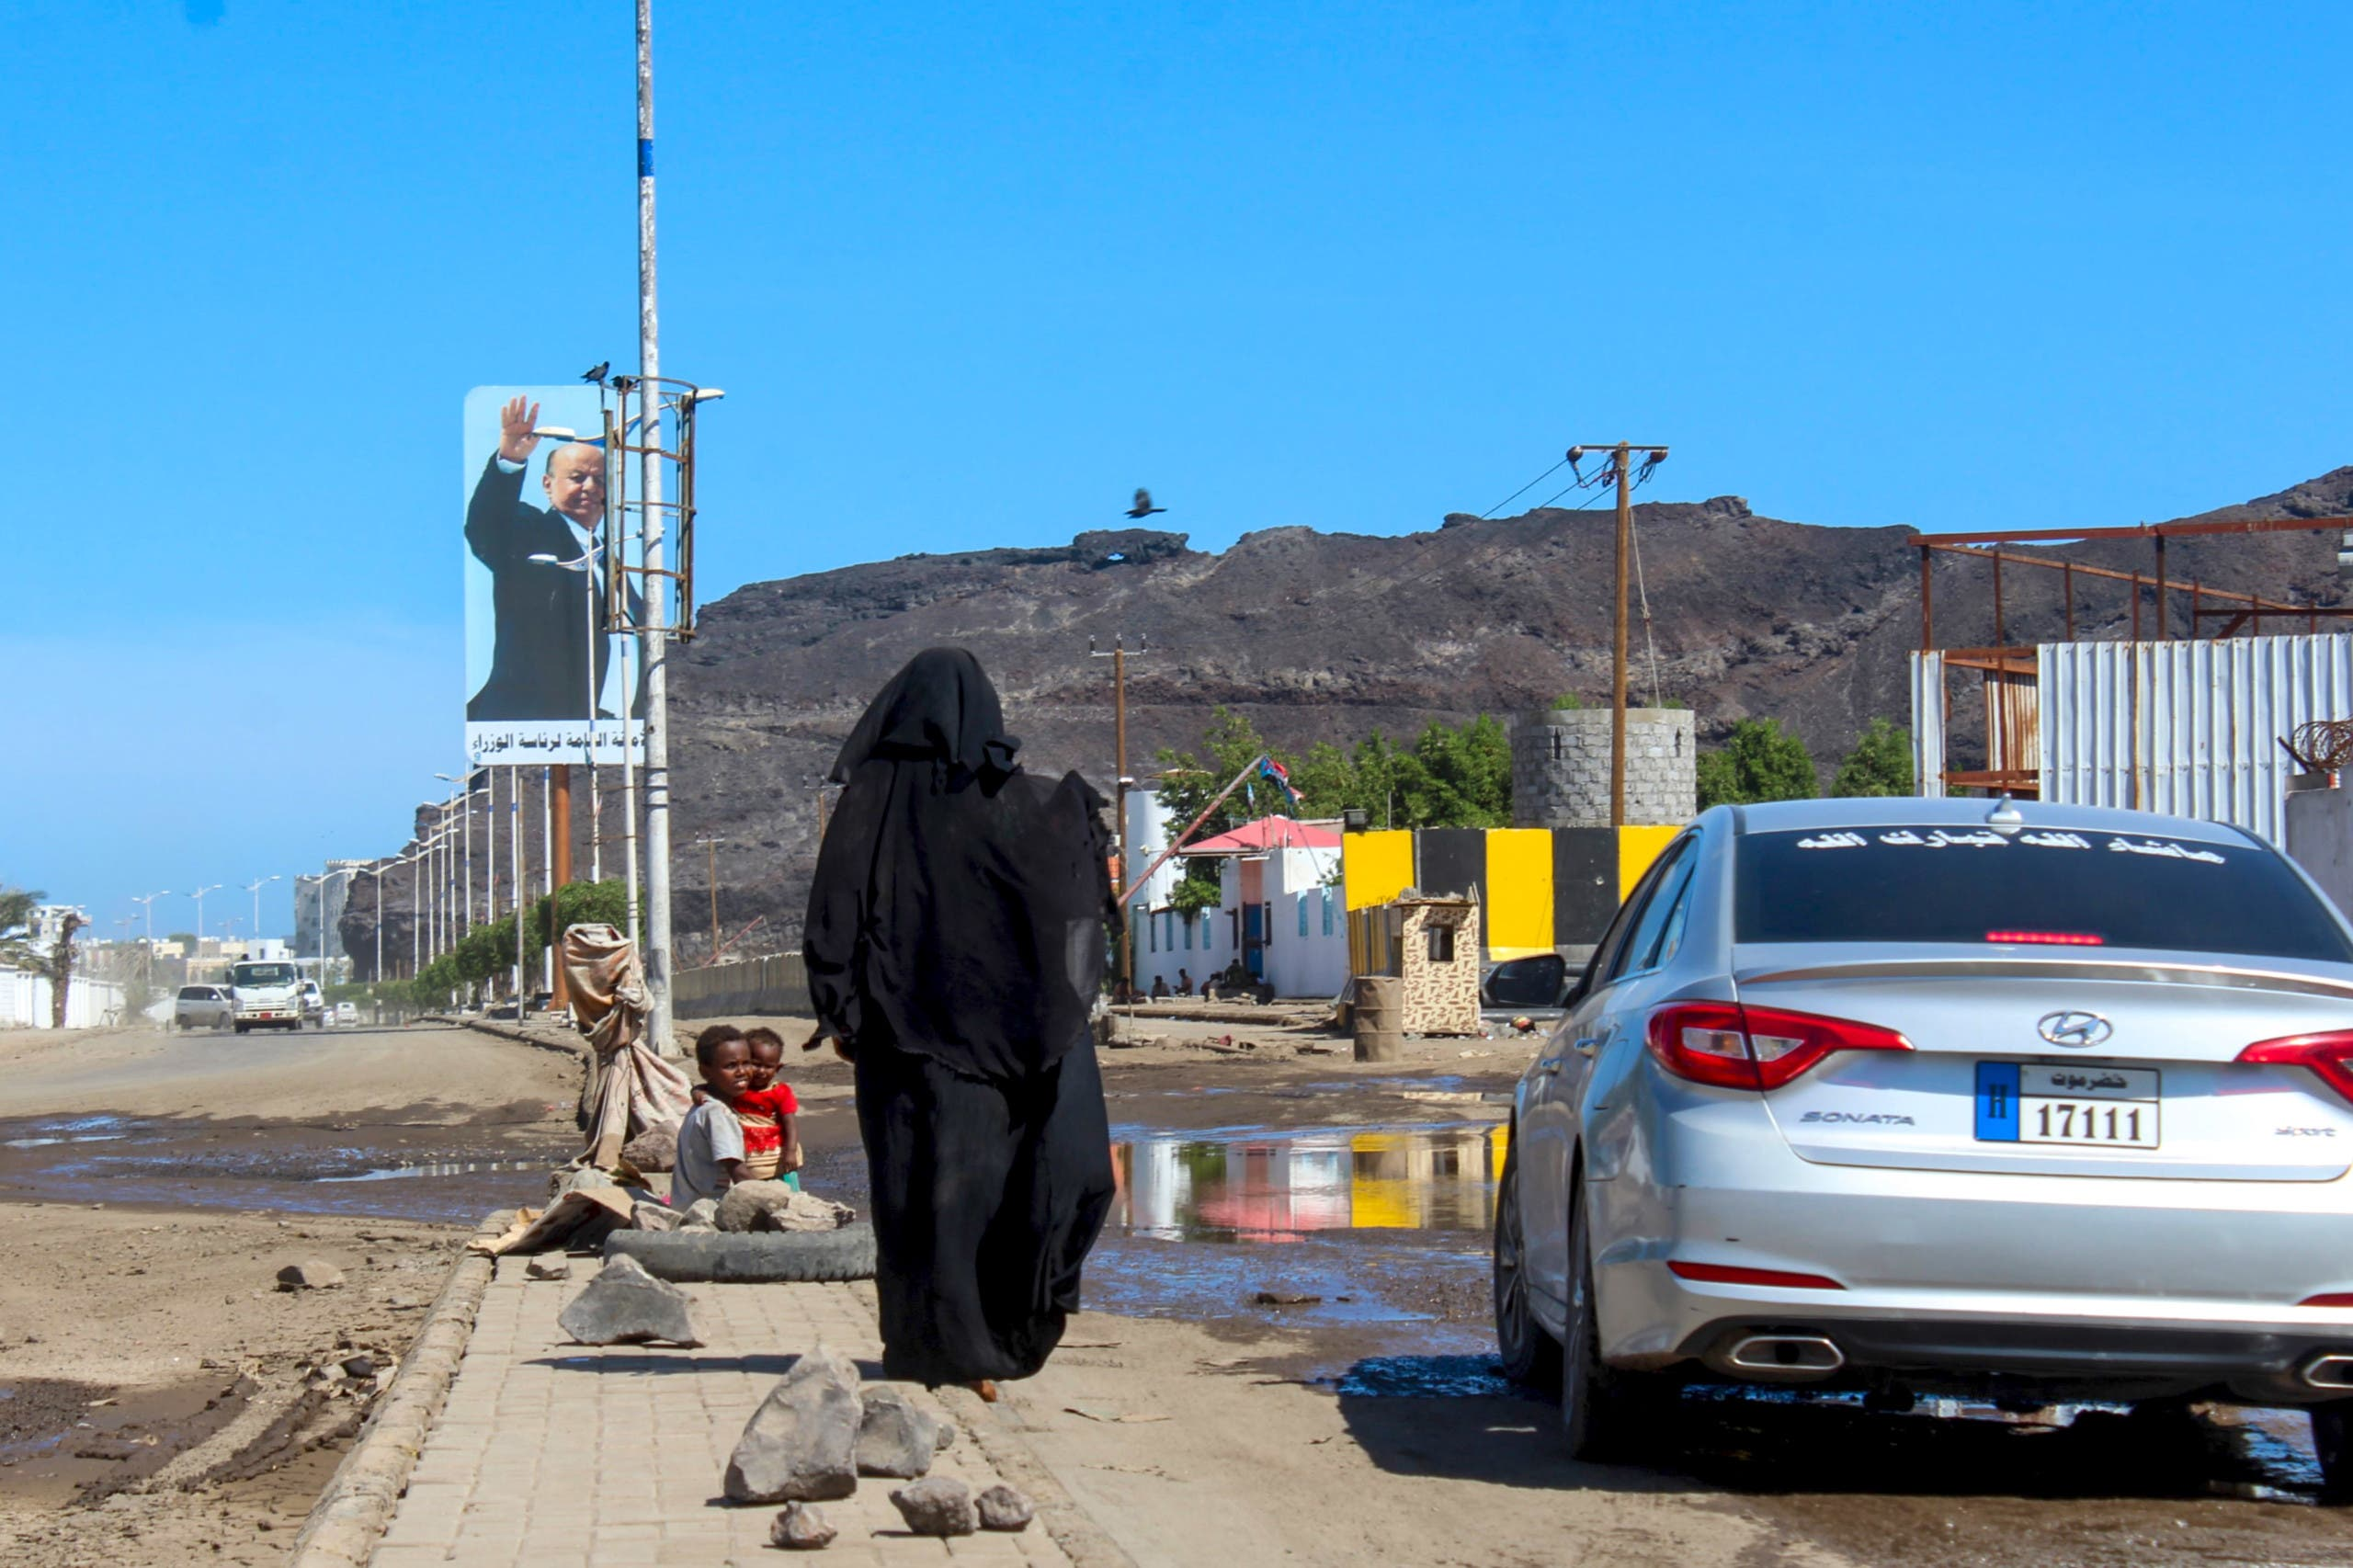 A woman begs for money, next to her children, from a vehicle in the southern Yemeni city of Aden on April 27, 2020, during the Muslim holy month of Ramadan. (File photo)